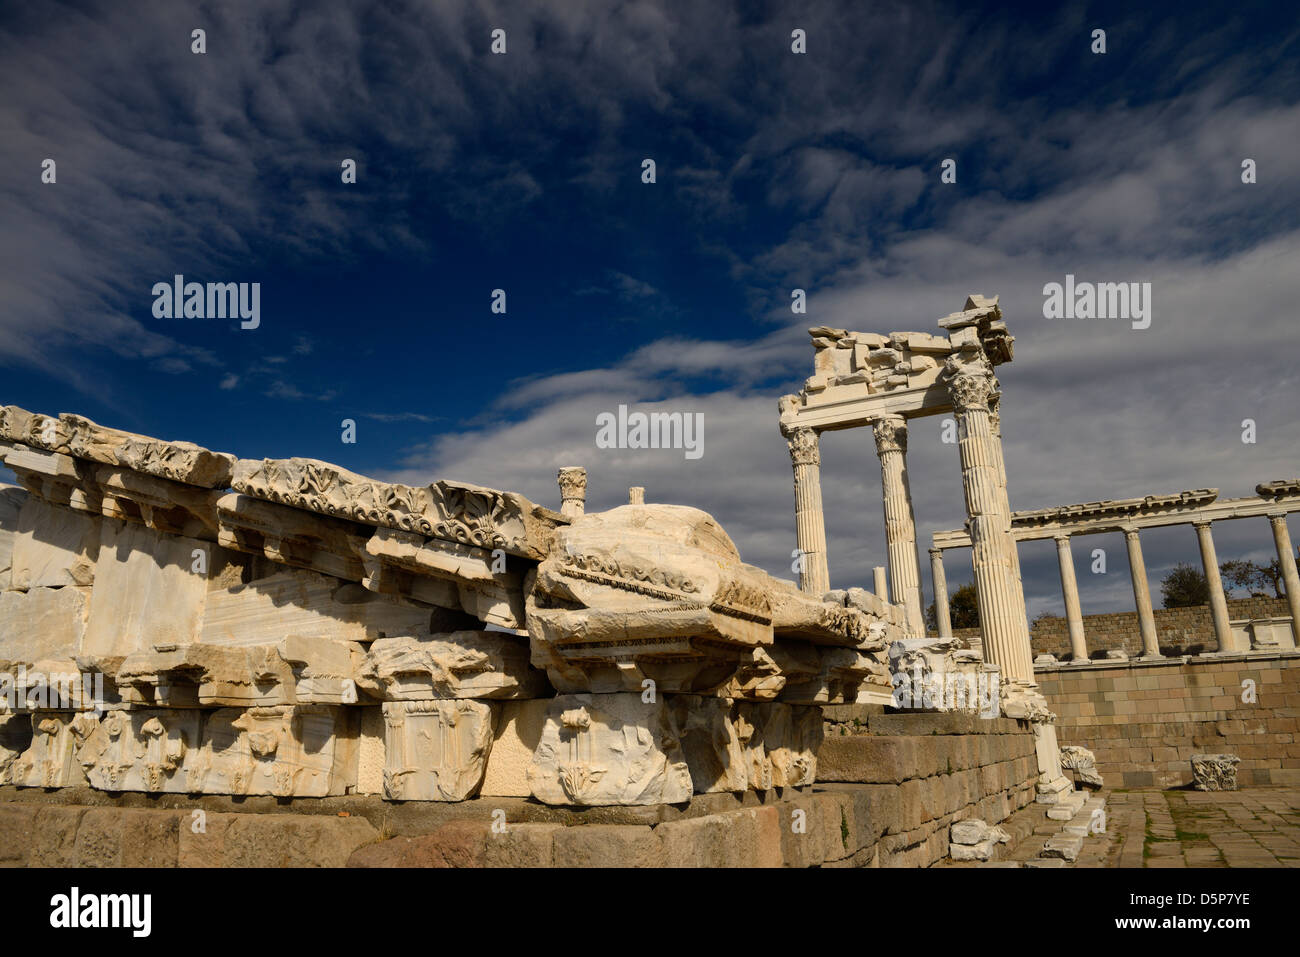 Carved marble pediment among ruins of Temple of Trajan at Pergamon Bergama Turkey - Stock Image